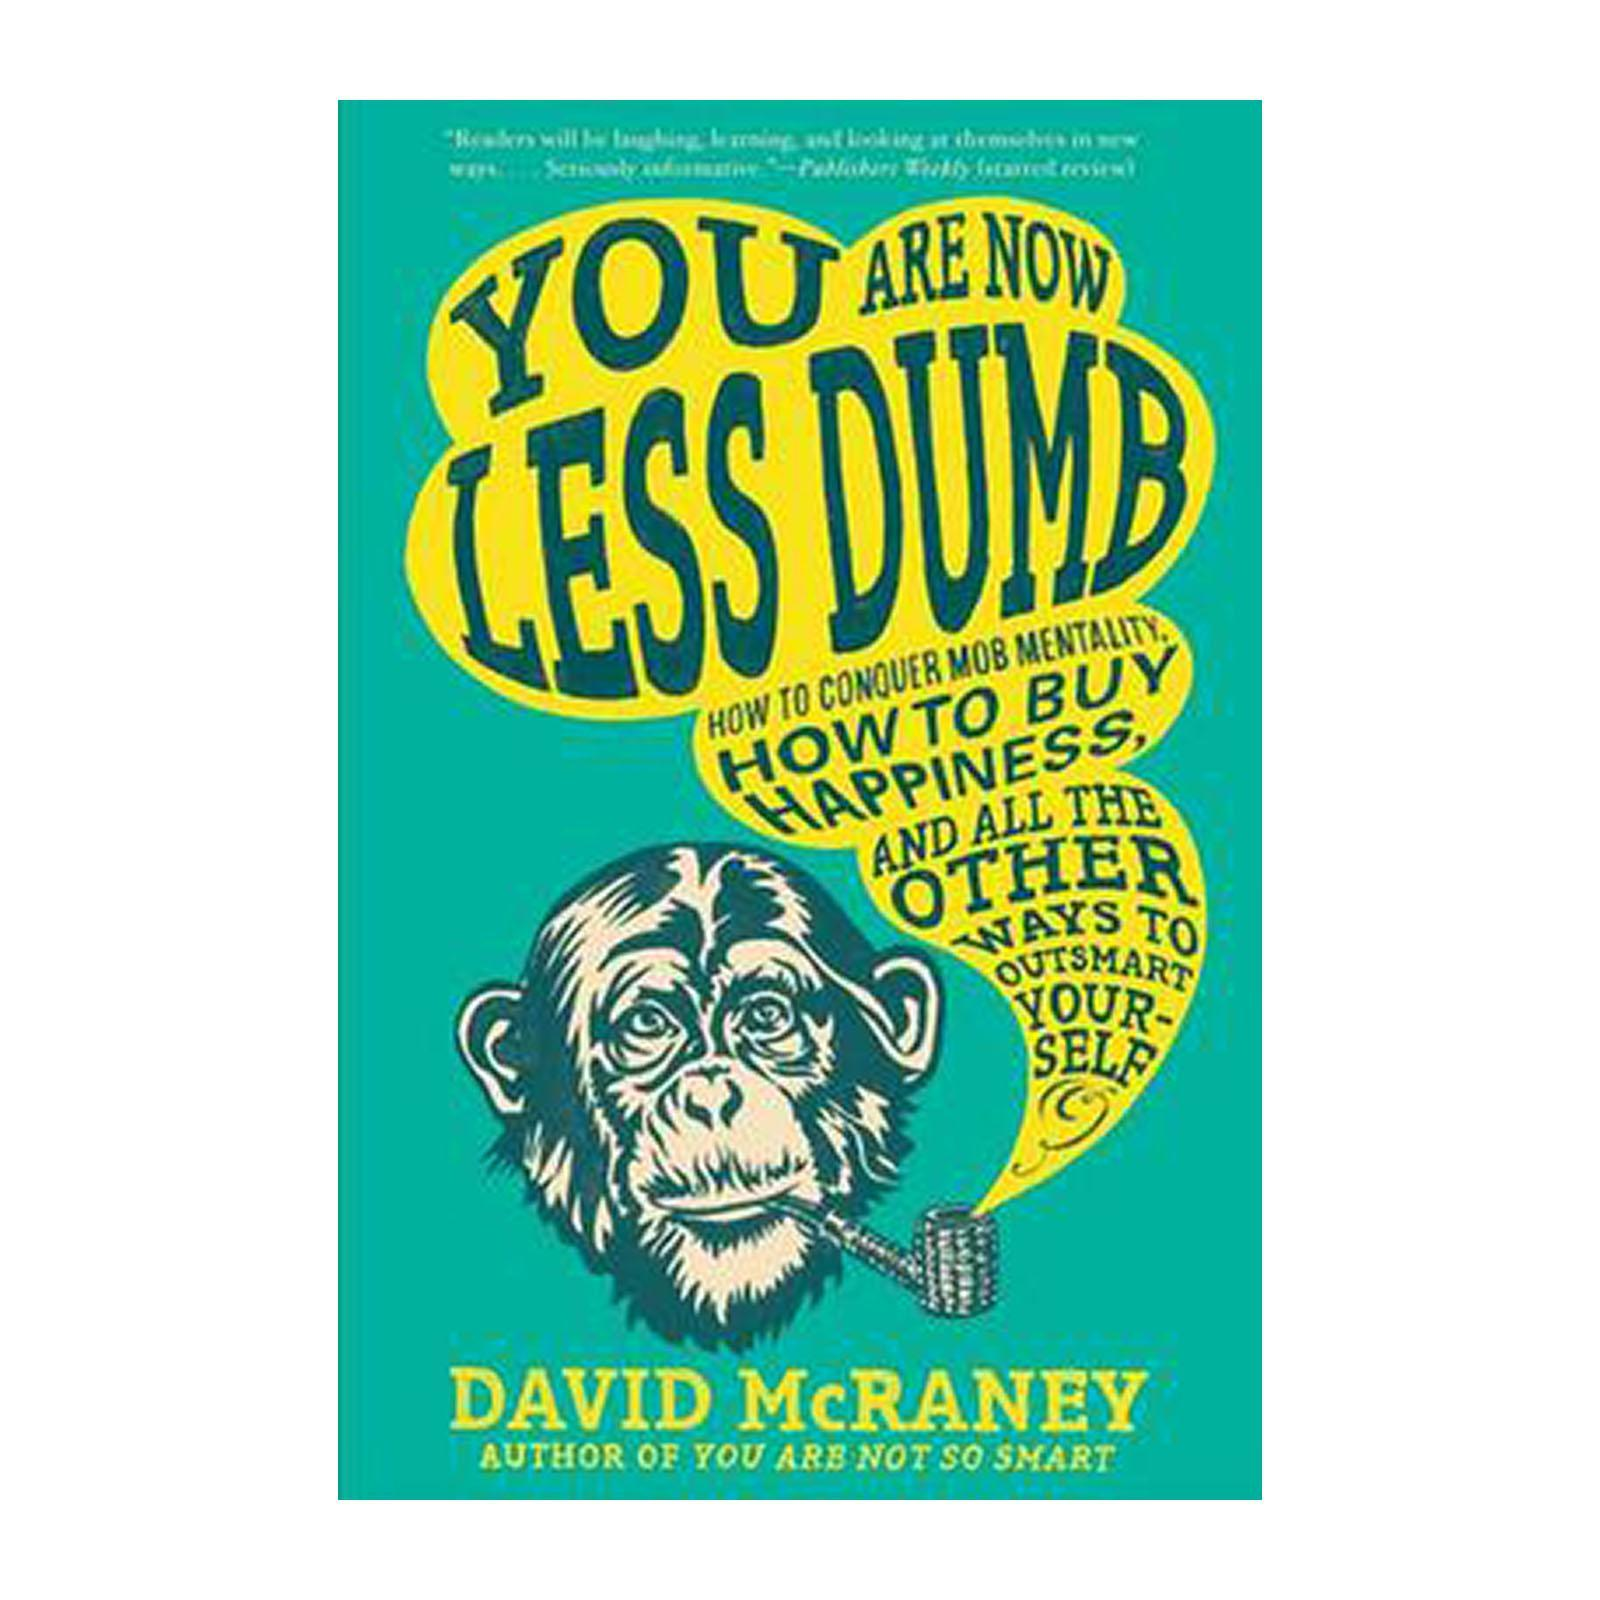 You Are Now Less Dumb: How To Conquer Mob Mentality And How To Buy Happiness And And All The Other Ways To Outsmart Yourself (Paperback)